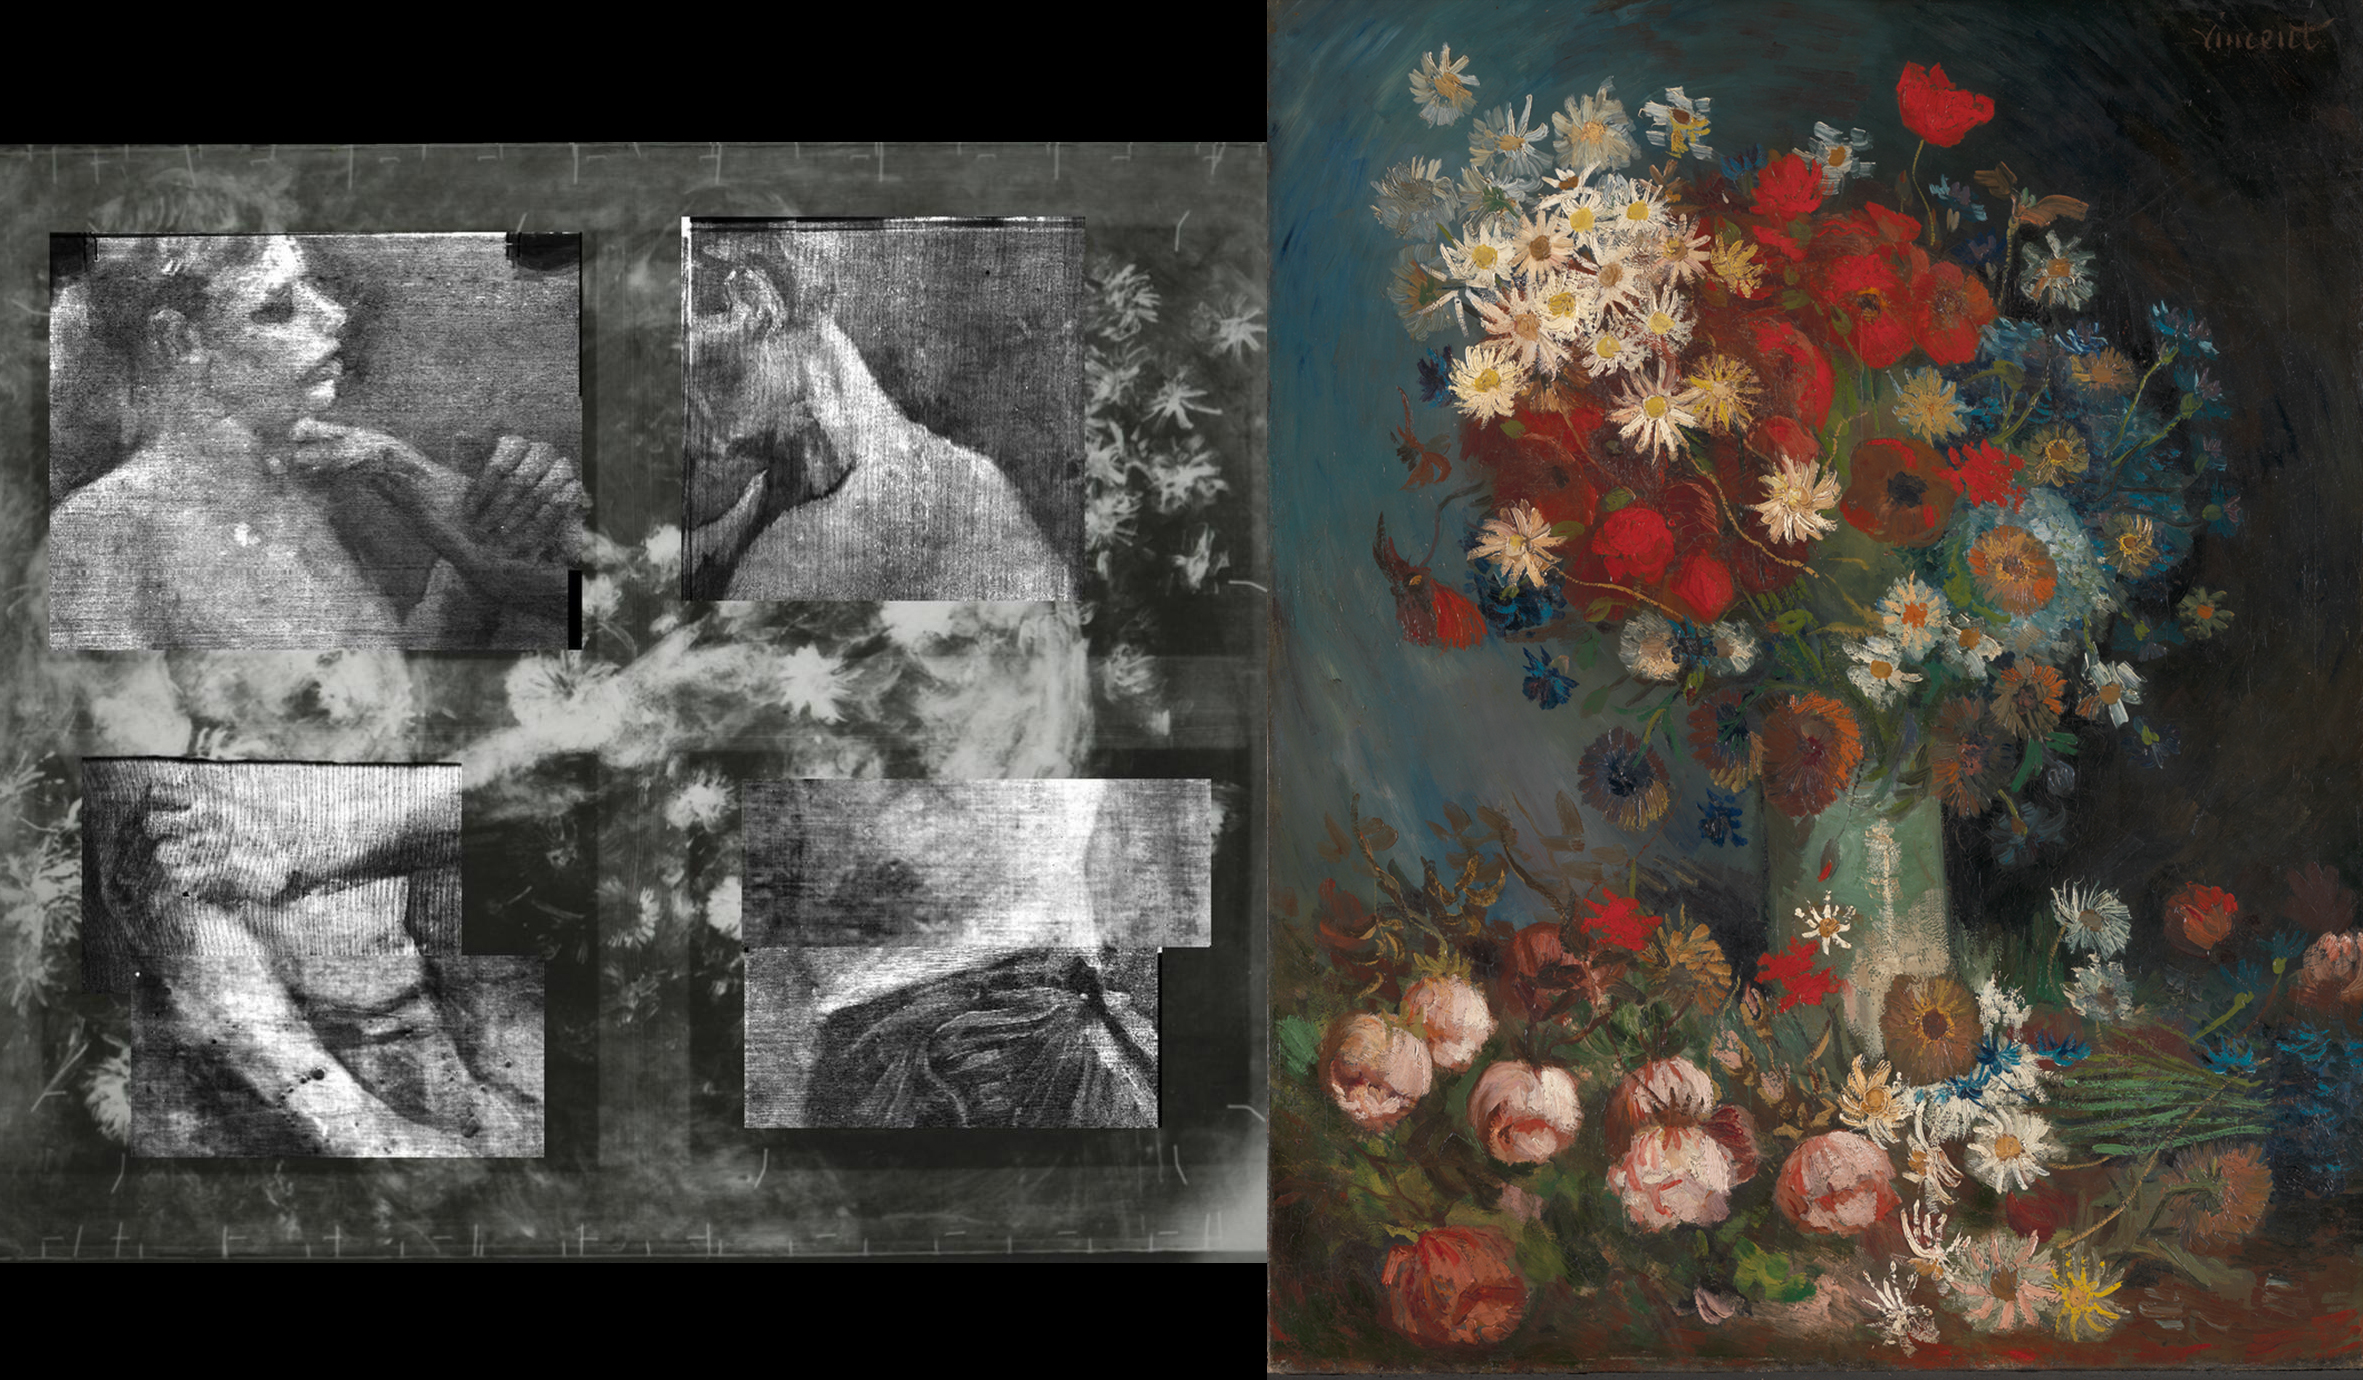 He Painted The Flower Still Life Over It Later. Xrf And Original